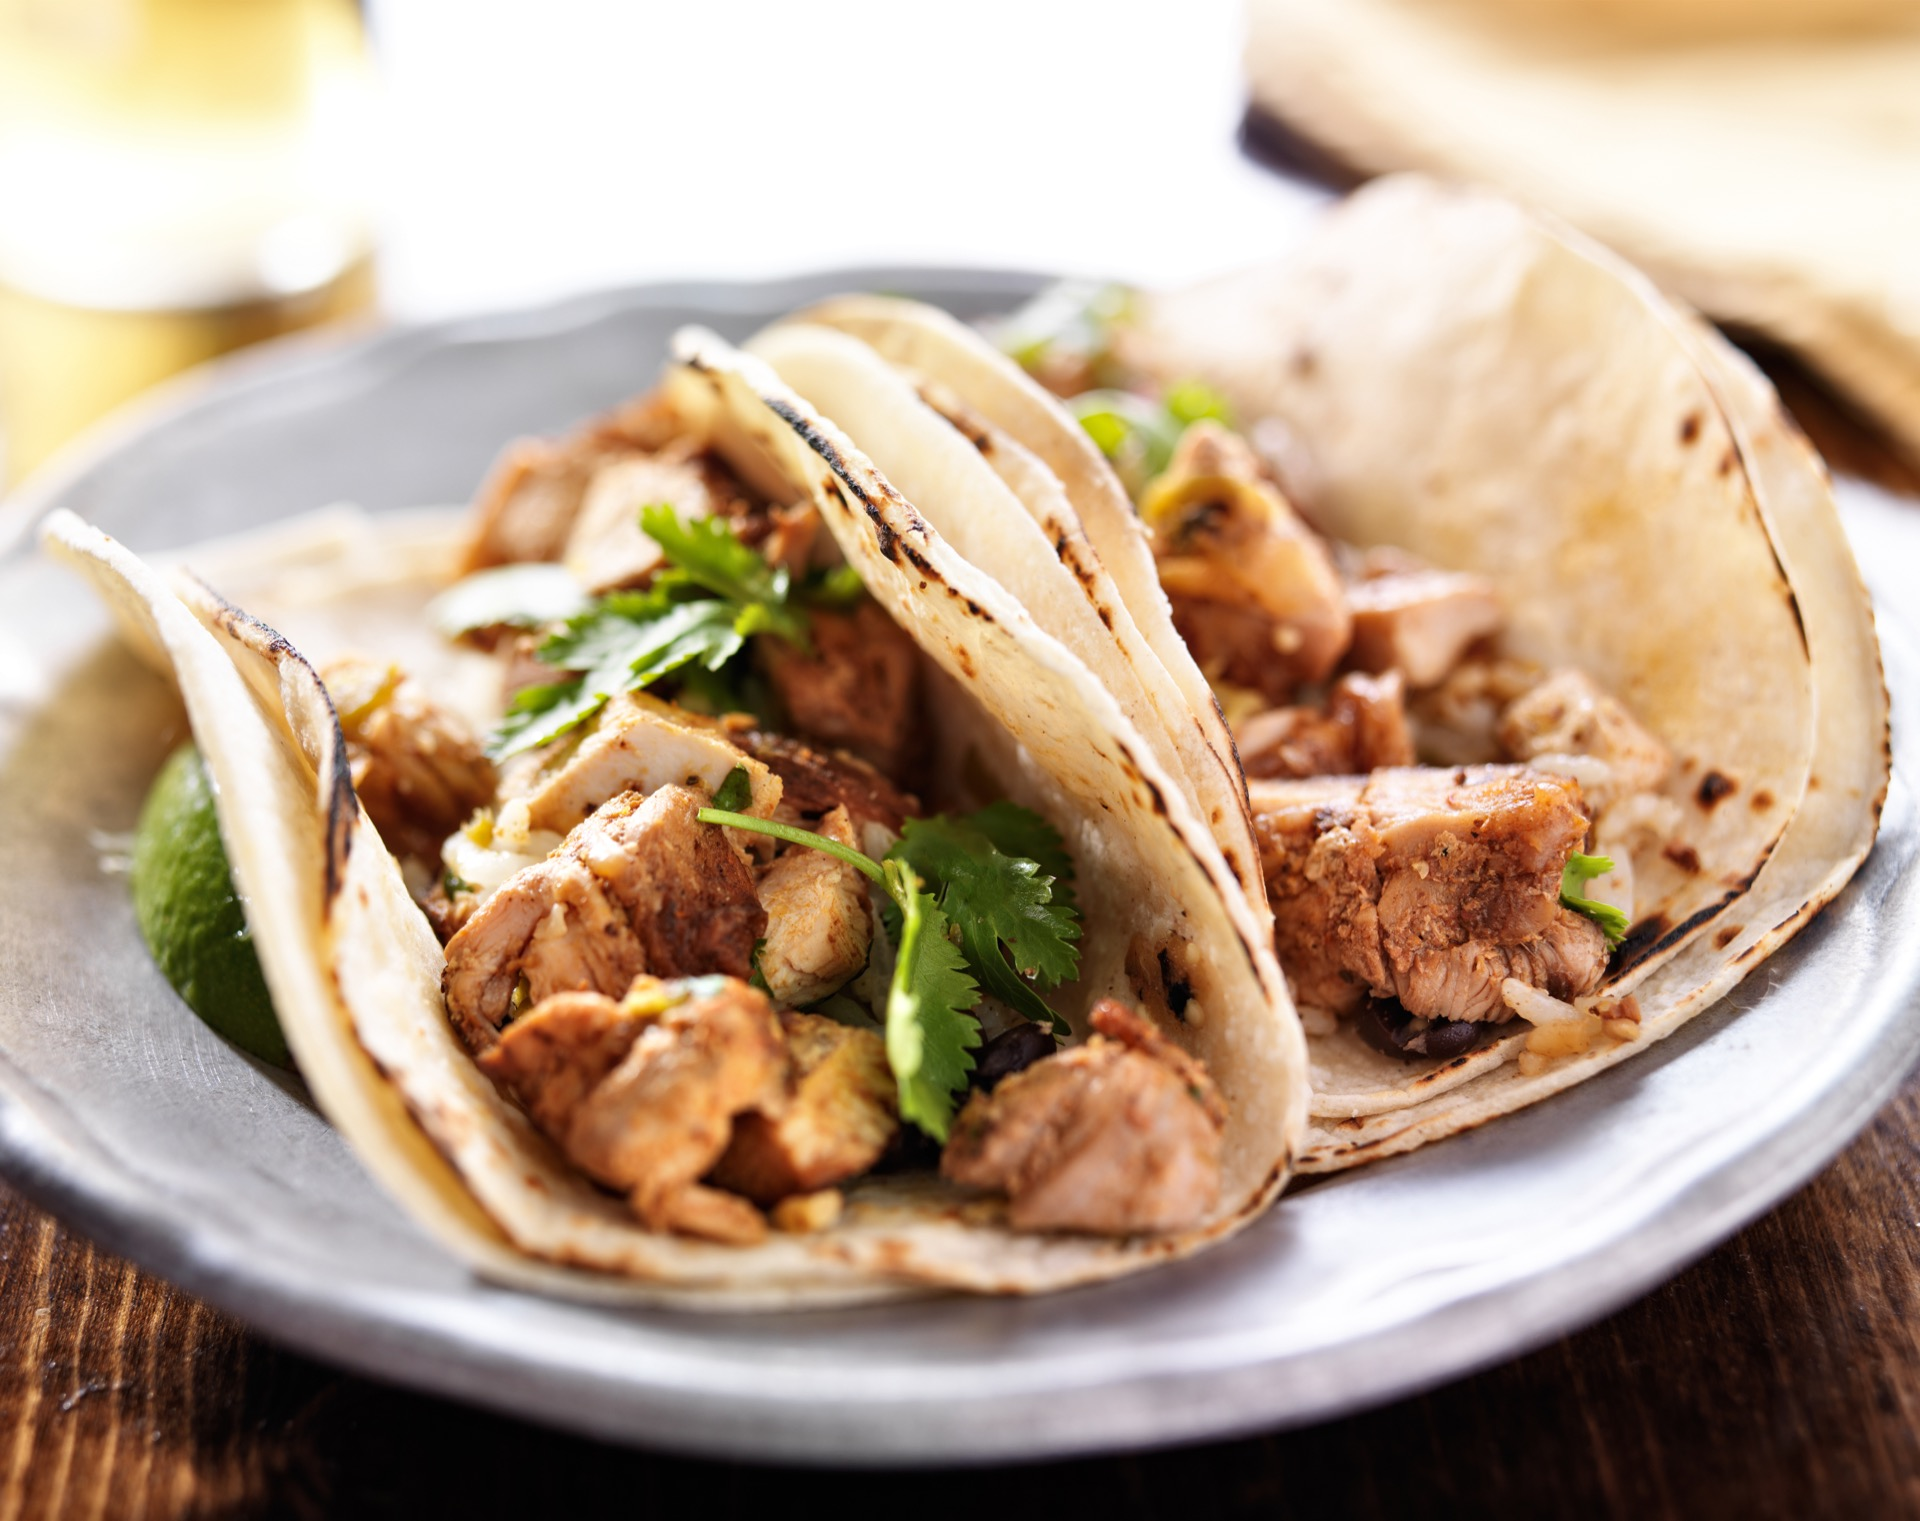 Mexican tacos with WA Foods chicken and cilantro